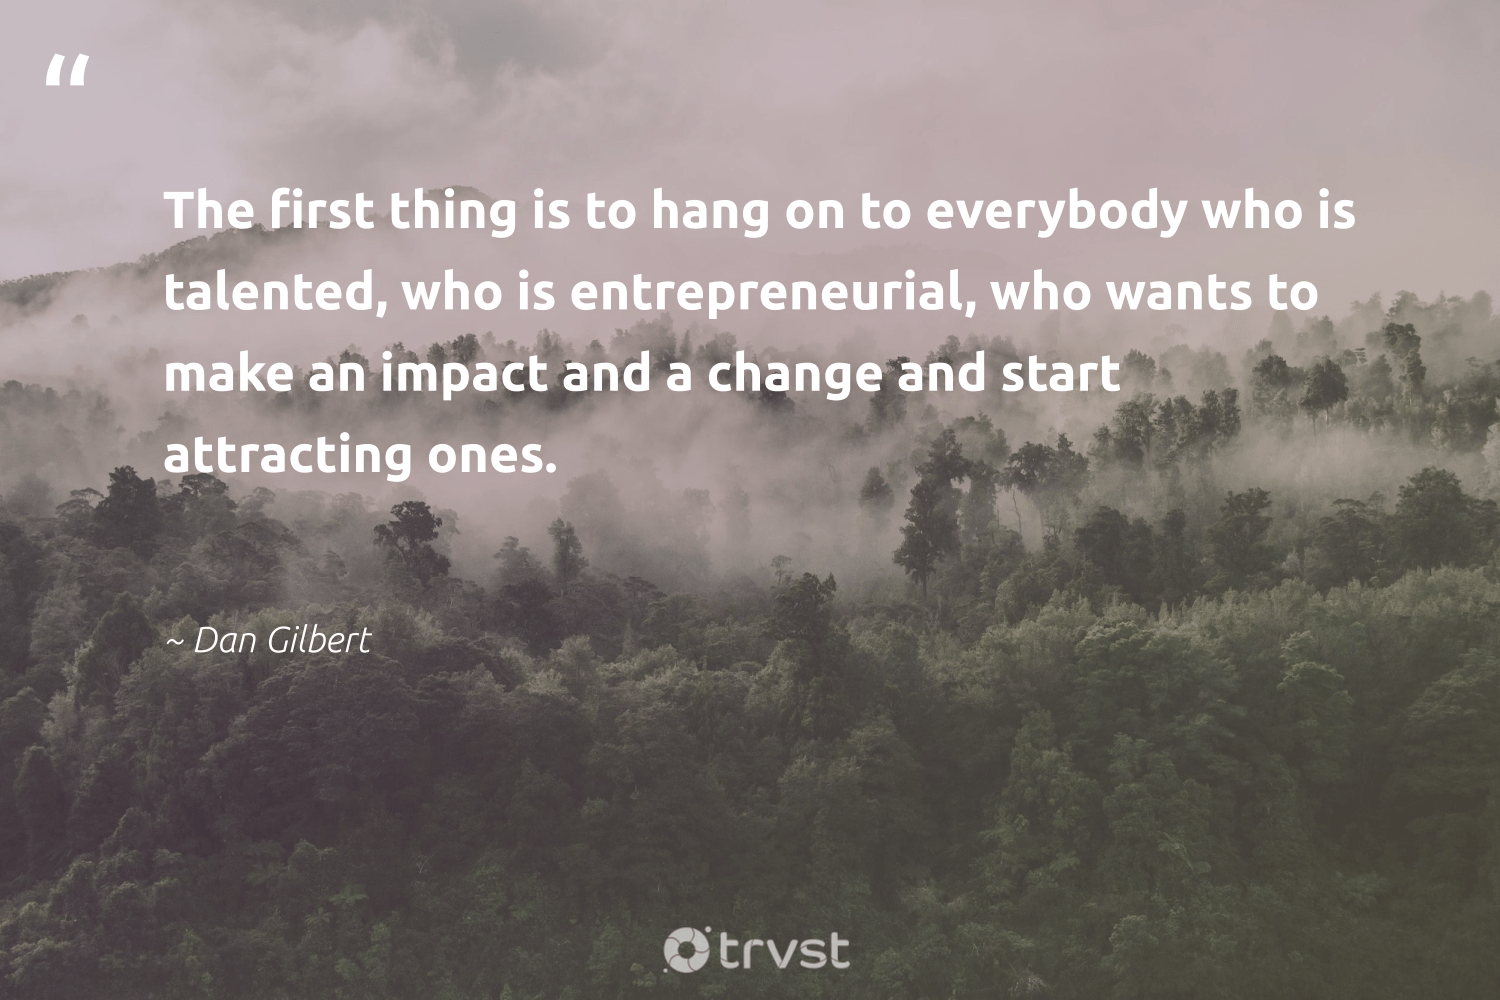 """The first thing is to hang on to everybody who is talented, who is entrepreneurial, who wants to make an impact and a change and start attracting ones.""  - Dan Gilbert #trvst #quotes #impact #giveback #dogood #betterplanet #gogreen #ethicalbusiness #collectiveaction #socialchange #dosomething #weareallone"